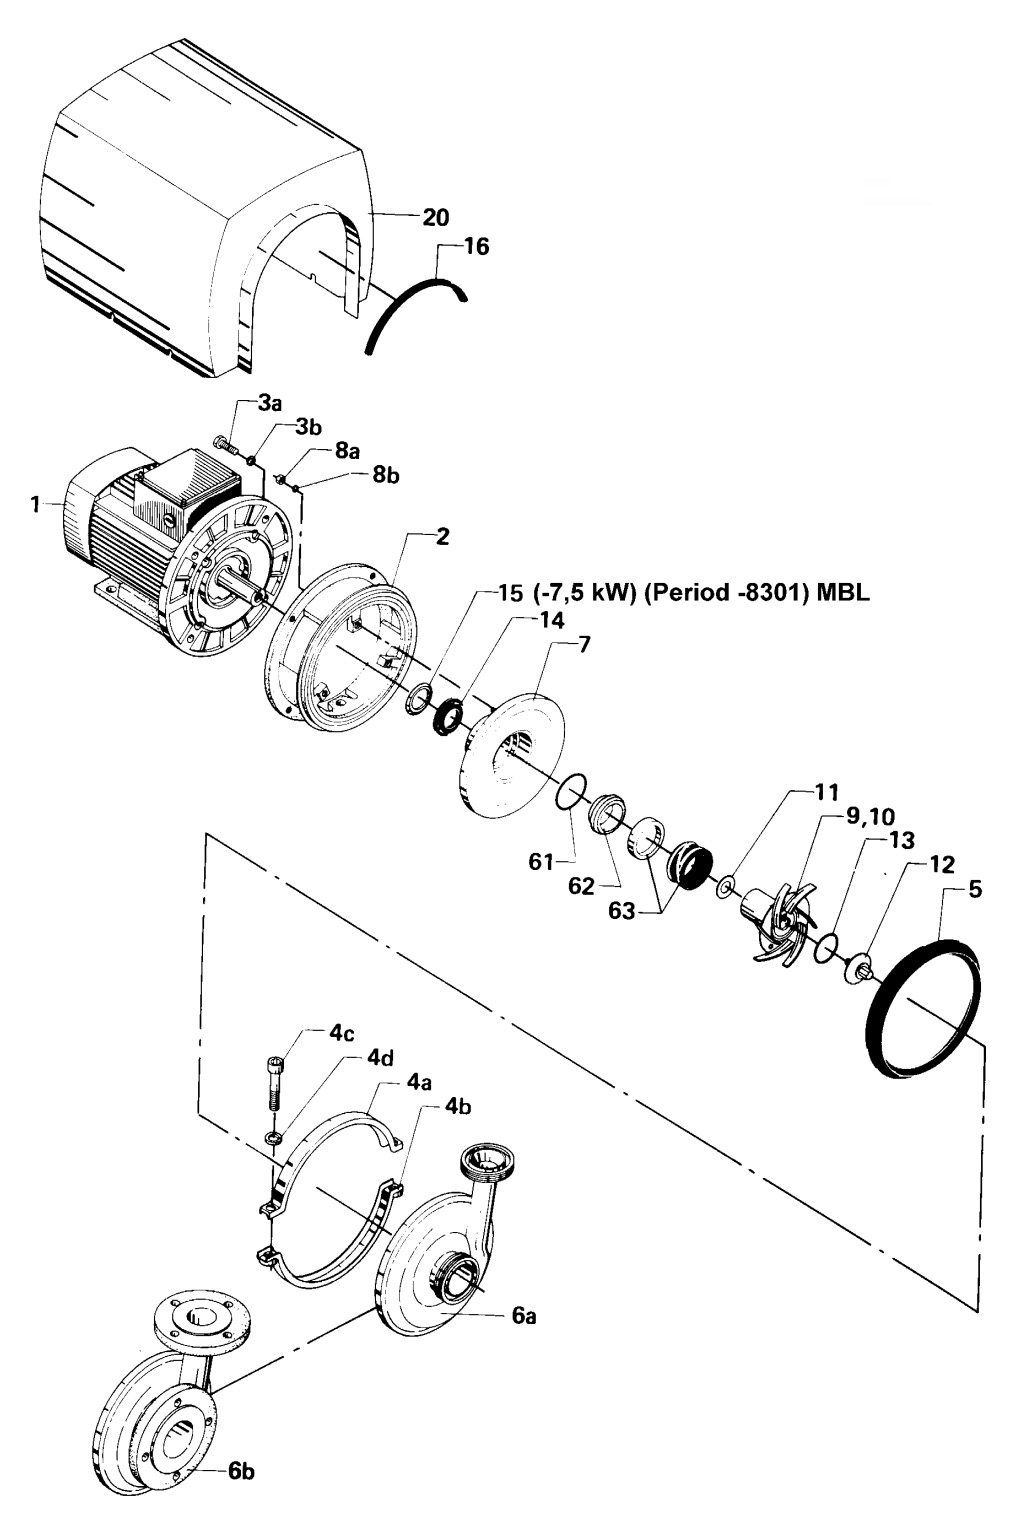 Tetra Pak ALC3 single shaft seal pump schematic